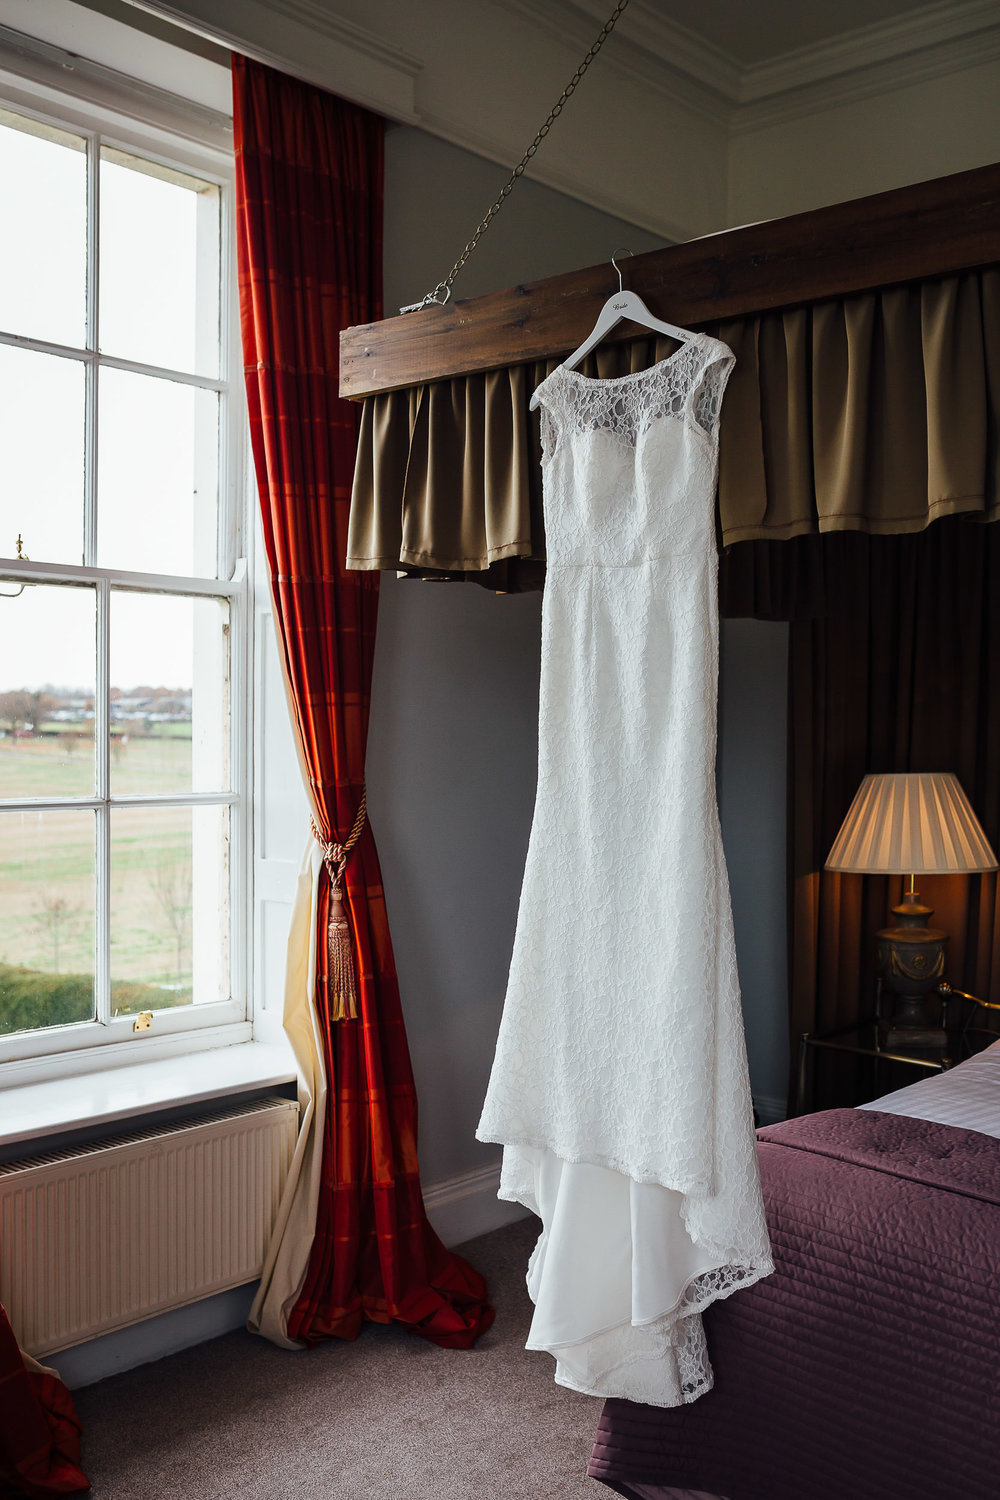 Wedding-Dovecliff-Hall-Hotel-professional-photographer-natural-documentary-nottingham-derby-34.jpg